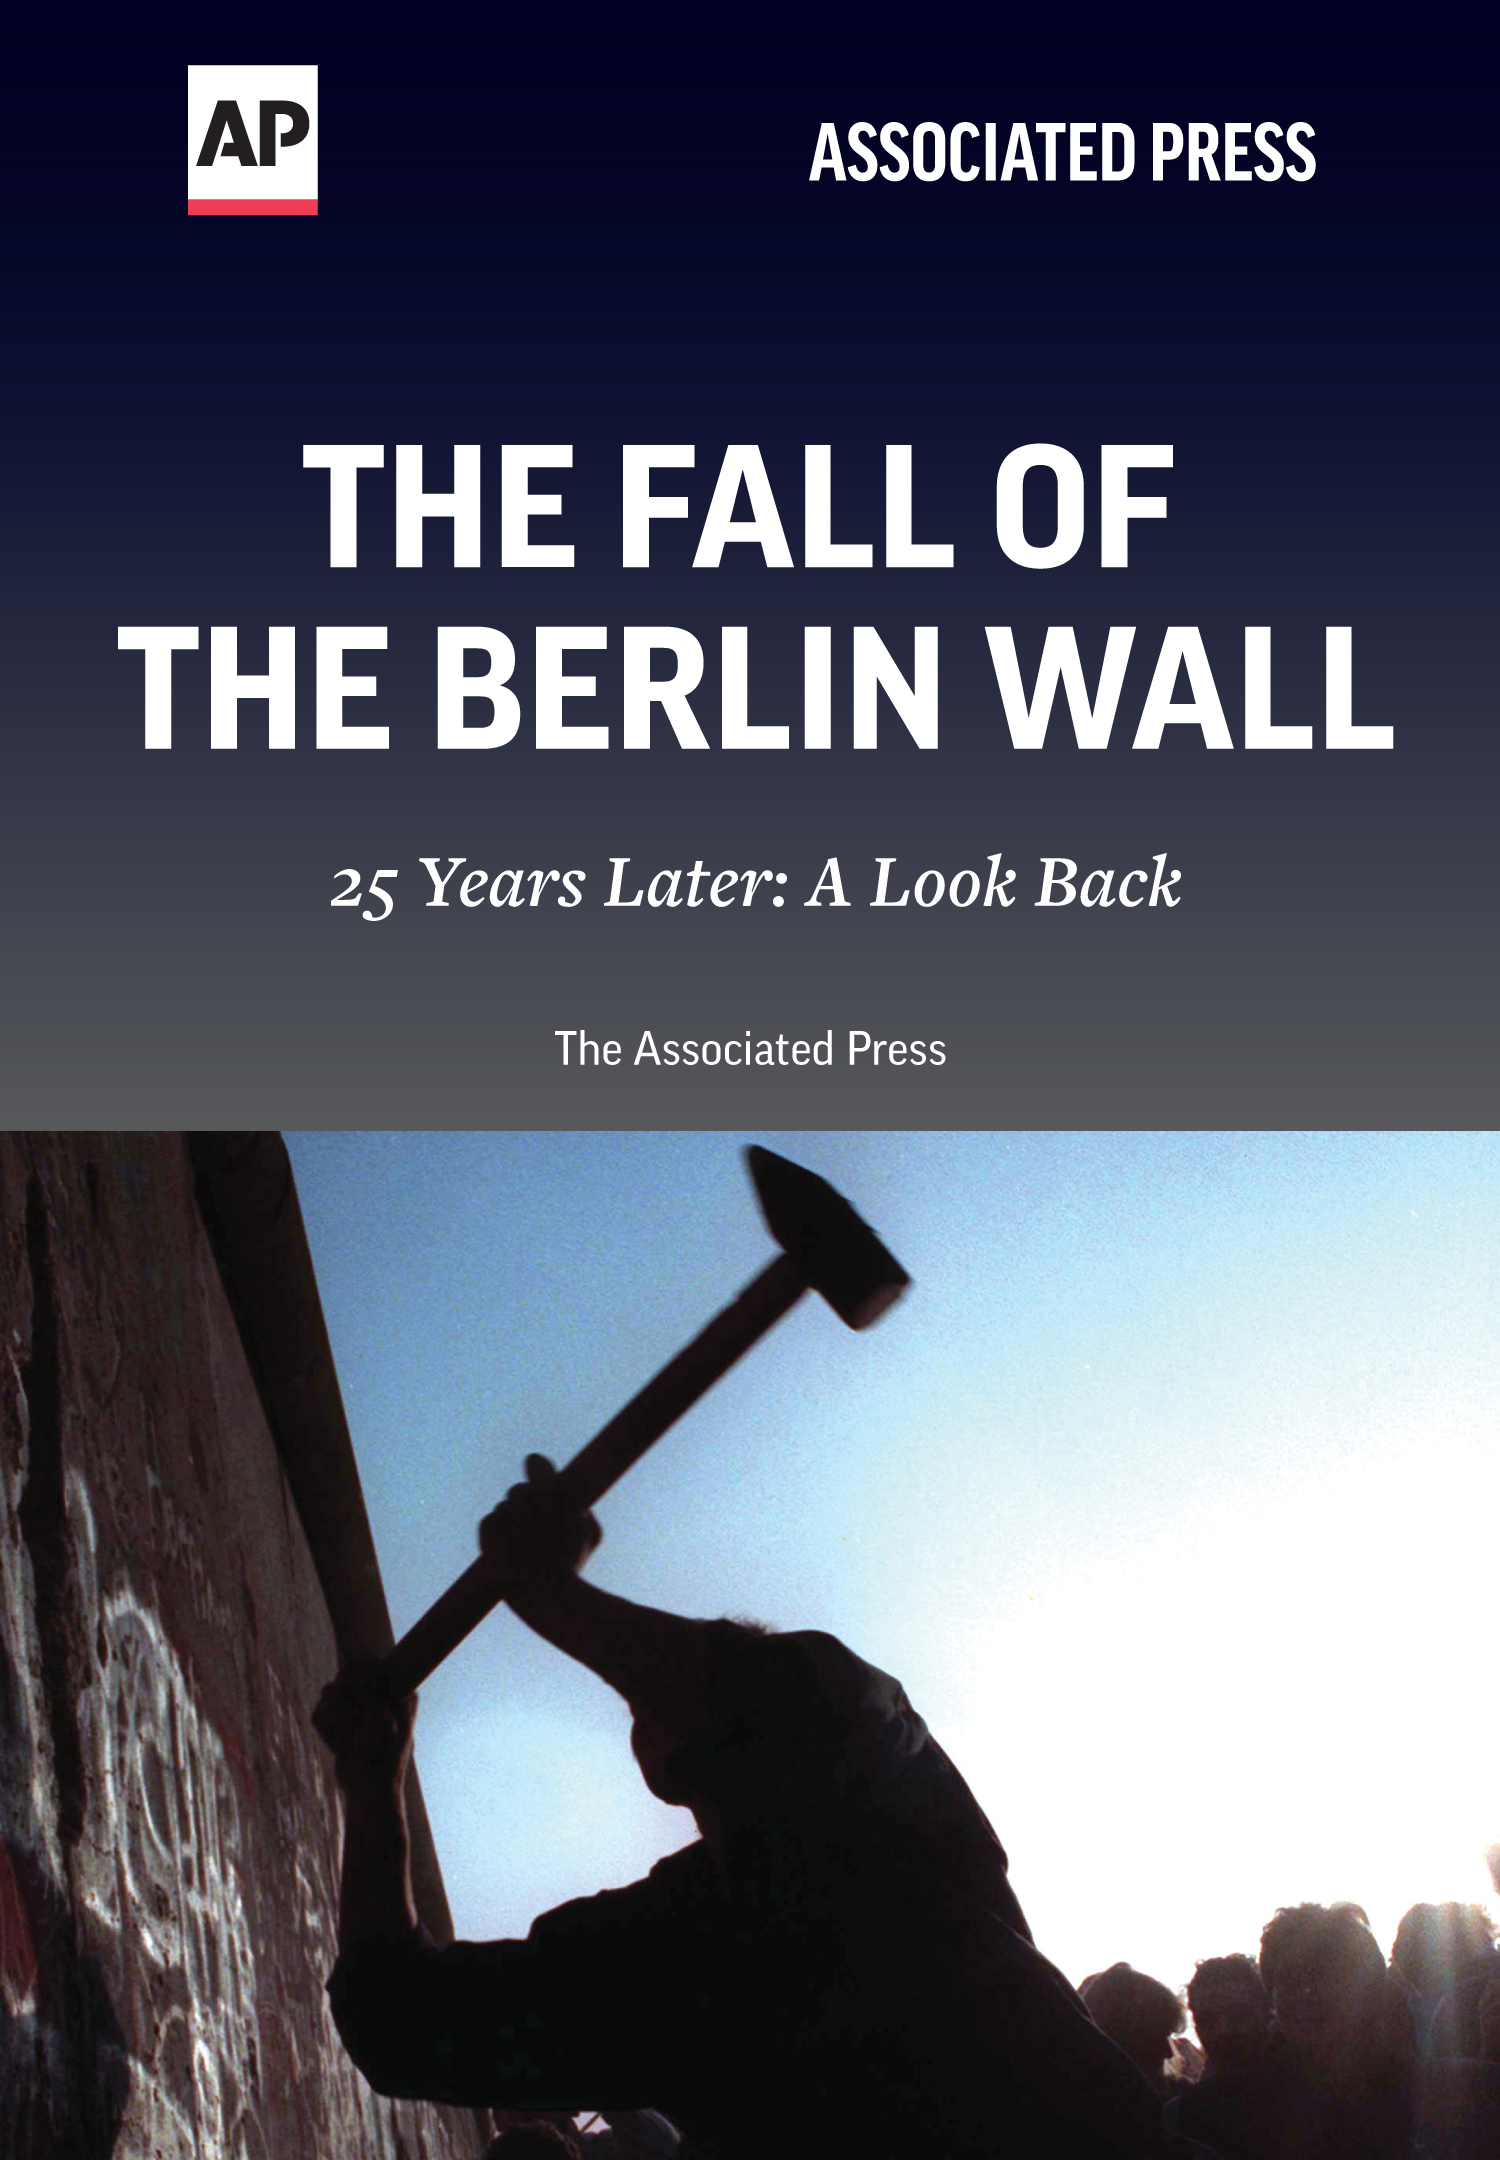 essay about fall of the berlin wall Moreover, two decades after the berlin wall fell, the spread of democracy has stalled between 1988 and 1990, as the cold war was winding down massive protests at either side of the berlin wall bring about the collapse of the east german government and the berliners flocked to the wall.